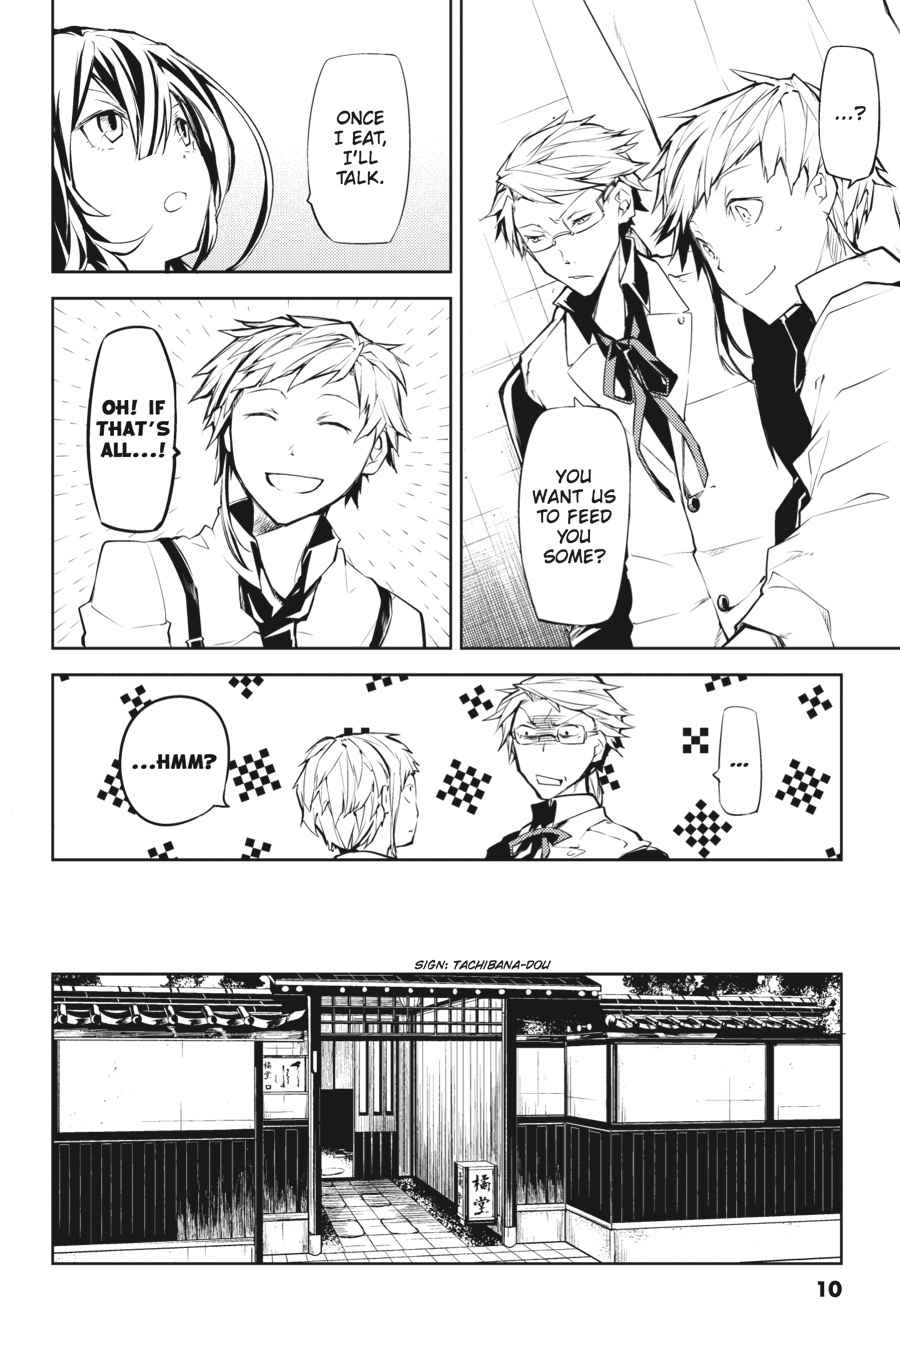 Bungou Stray Dogs Chapter 9 Page 10